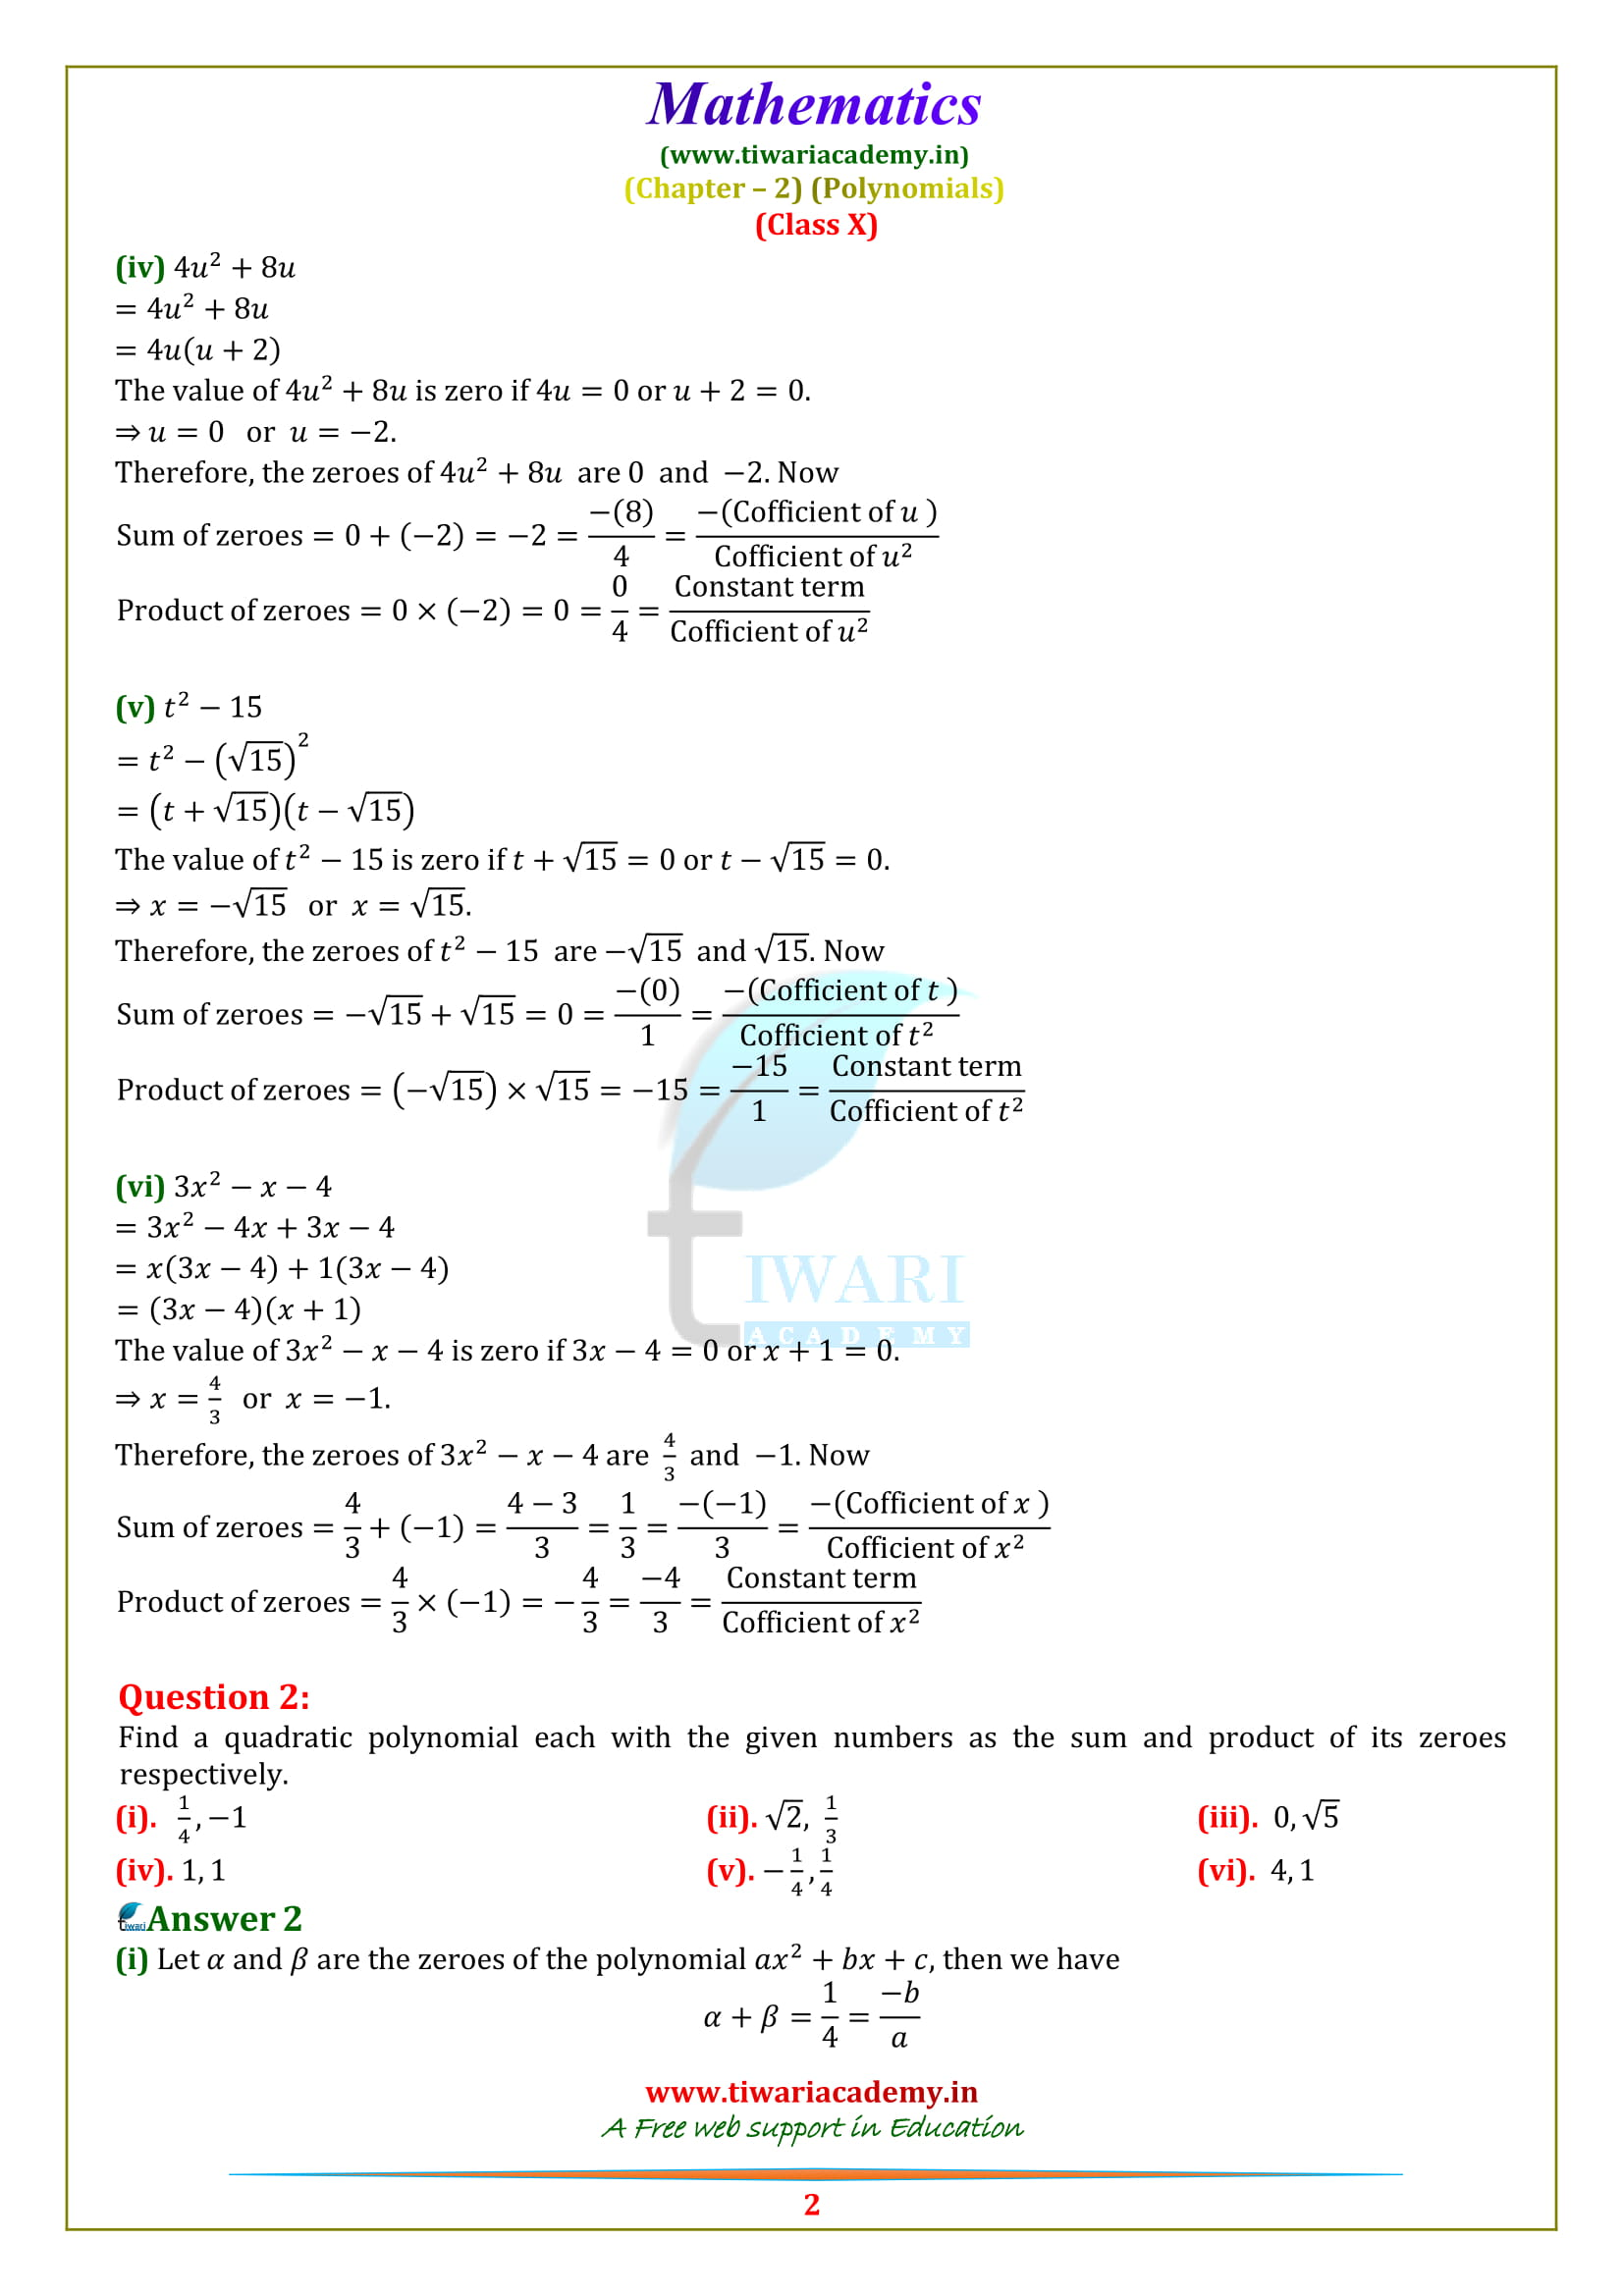 10 Maths Exercise 2.2 updated for 2018-19